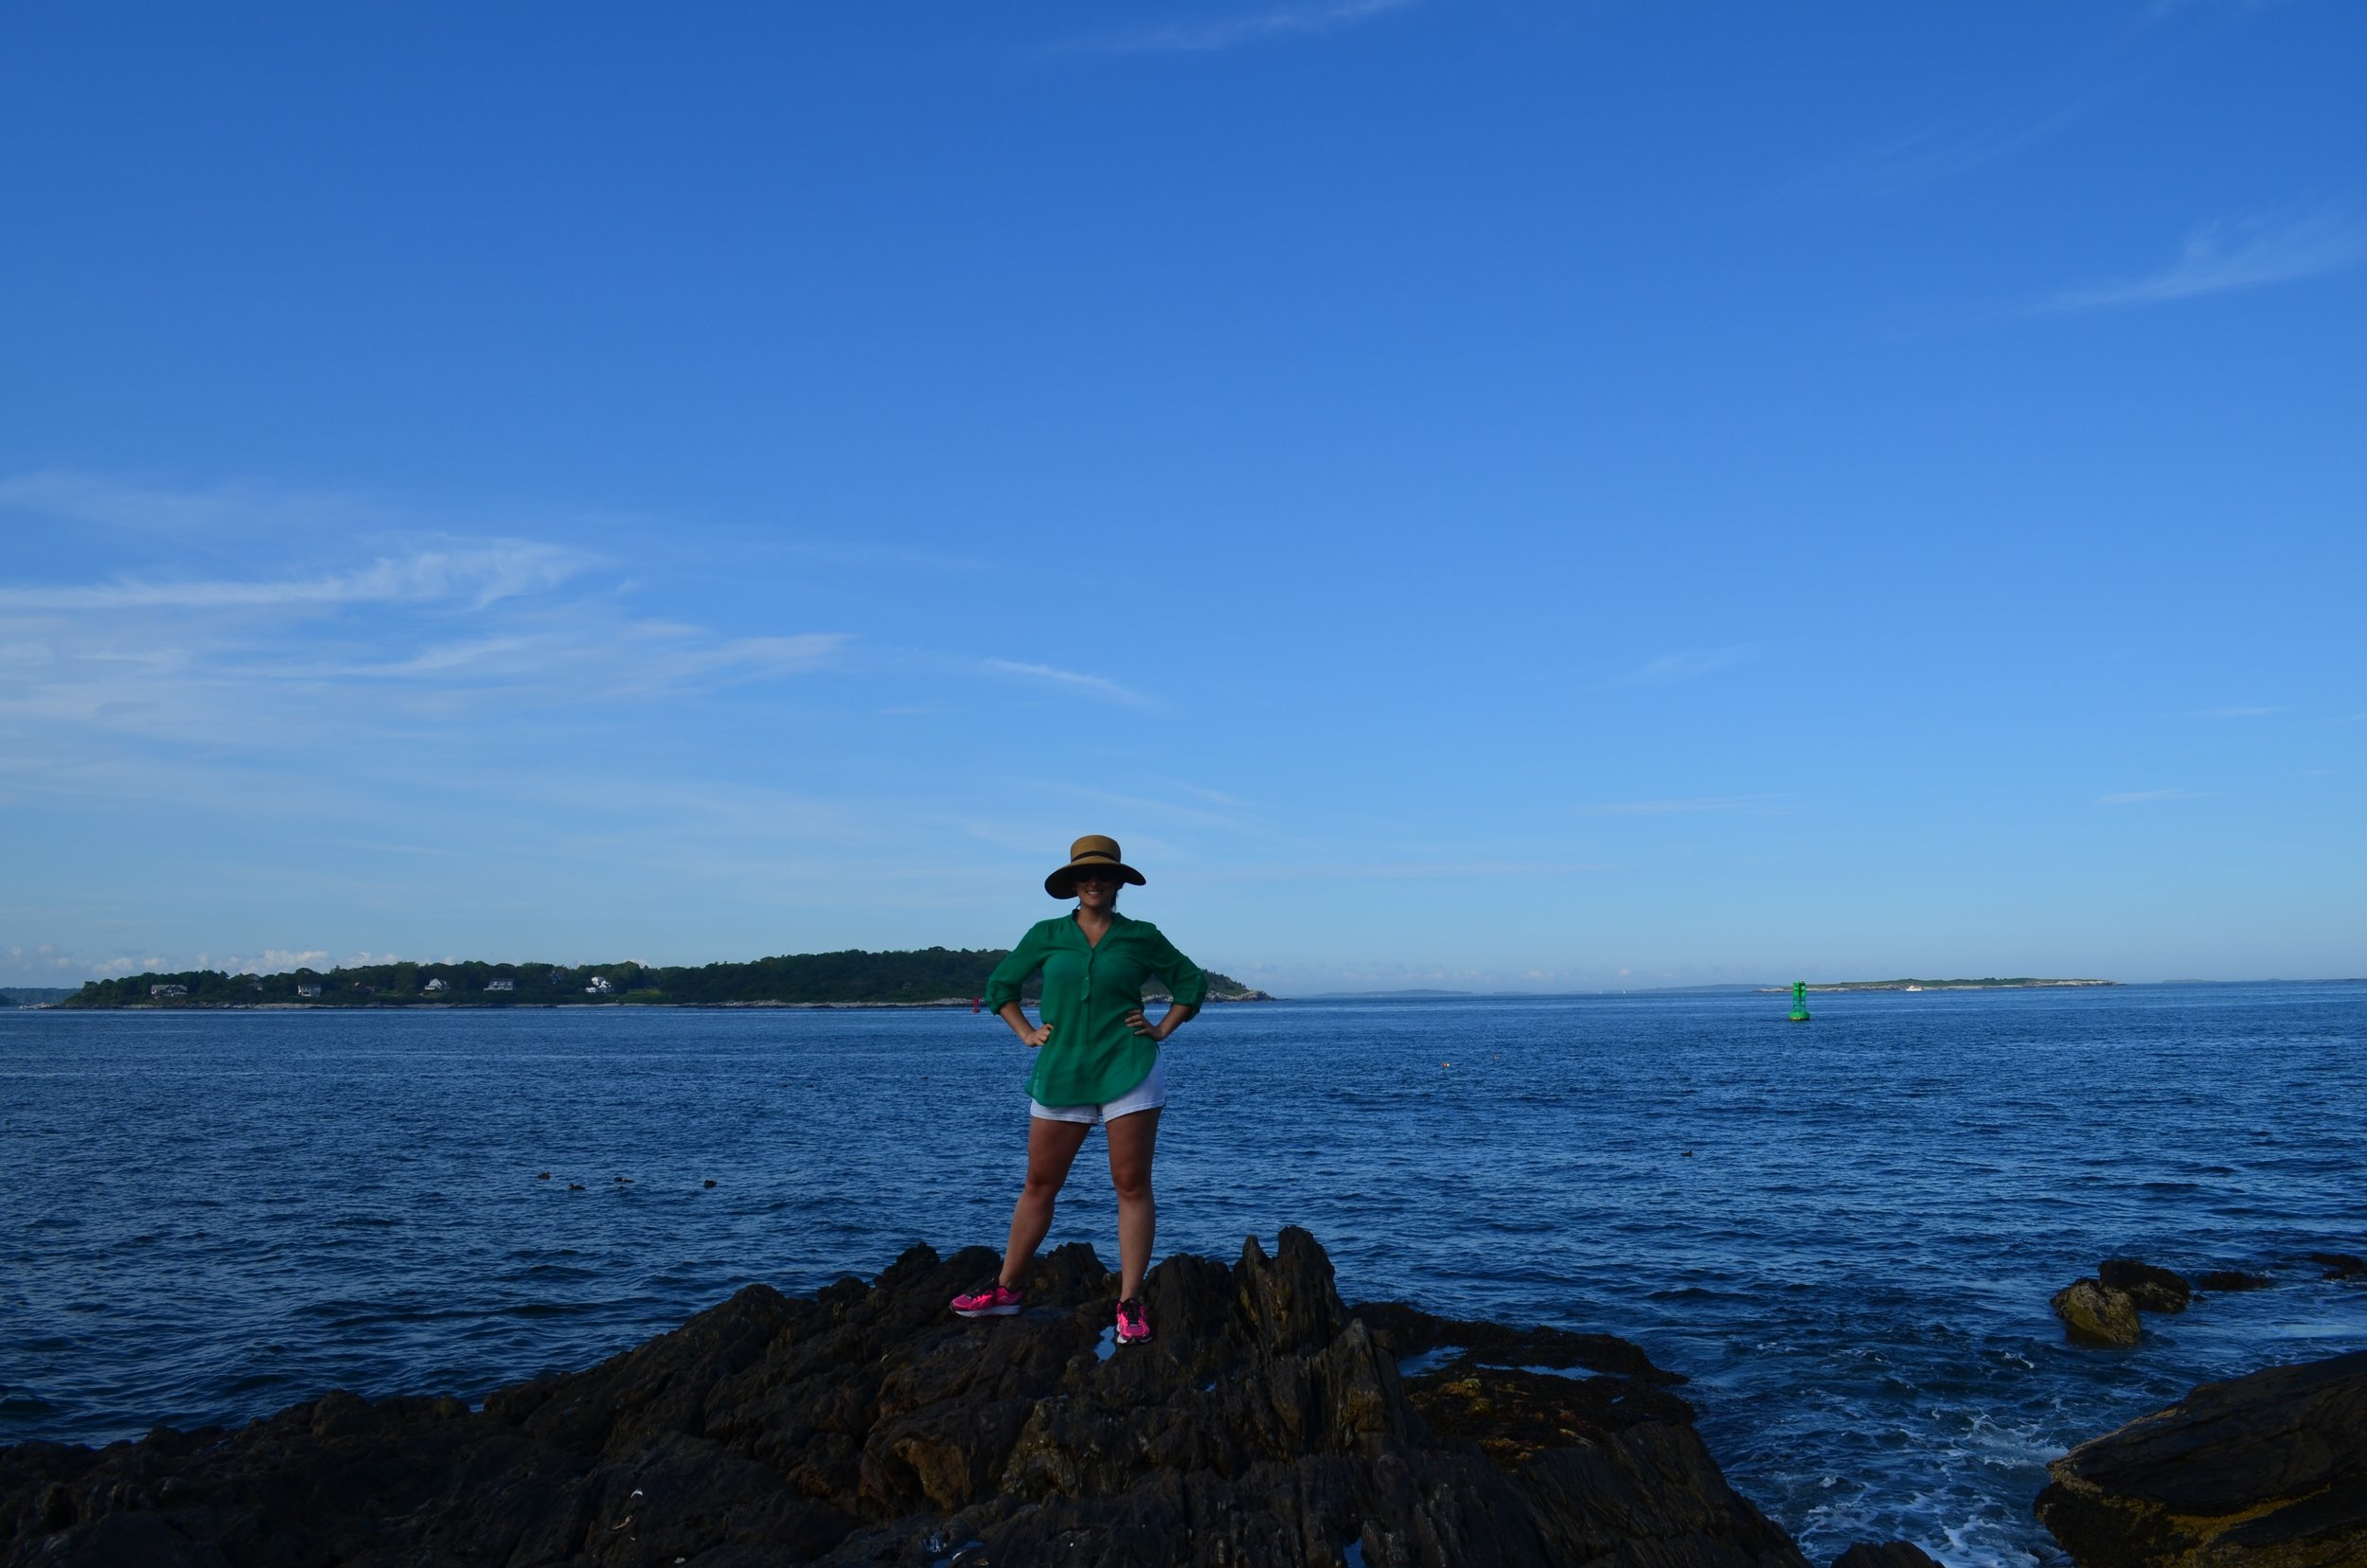 Cape Elizabeth, Maine - one of my happy places